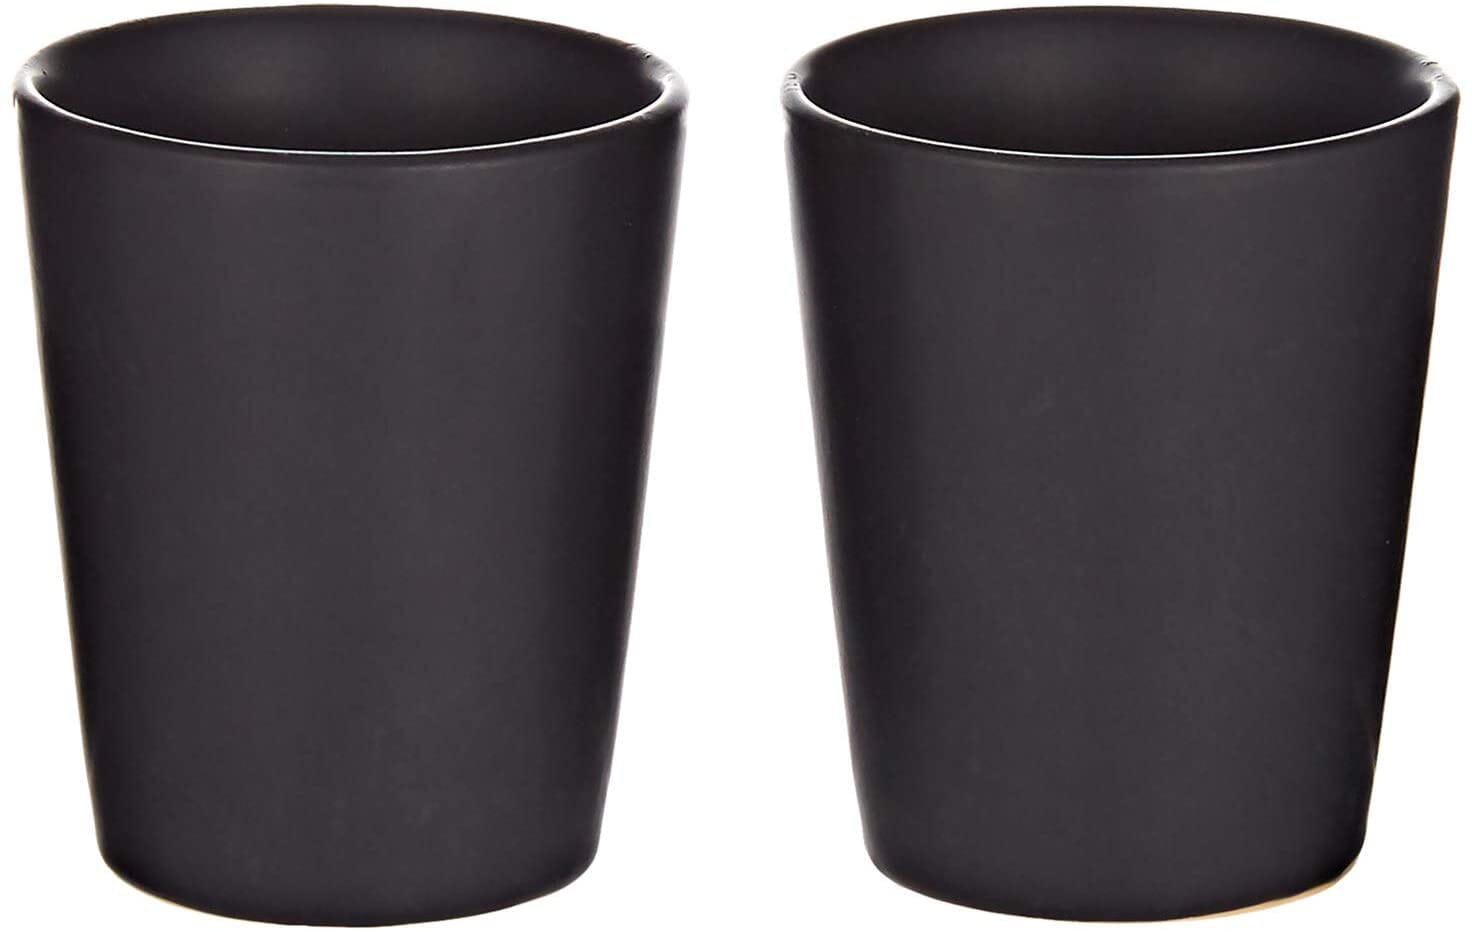 2pcs boston tequila vodka ceramic shot glasses black